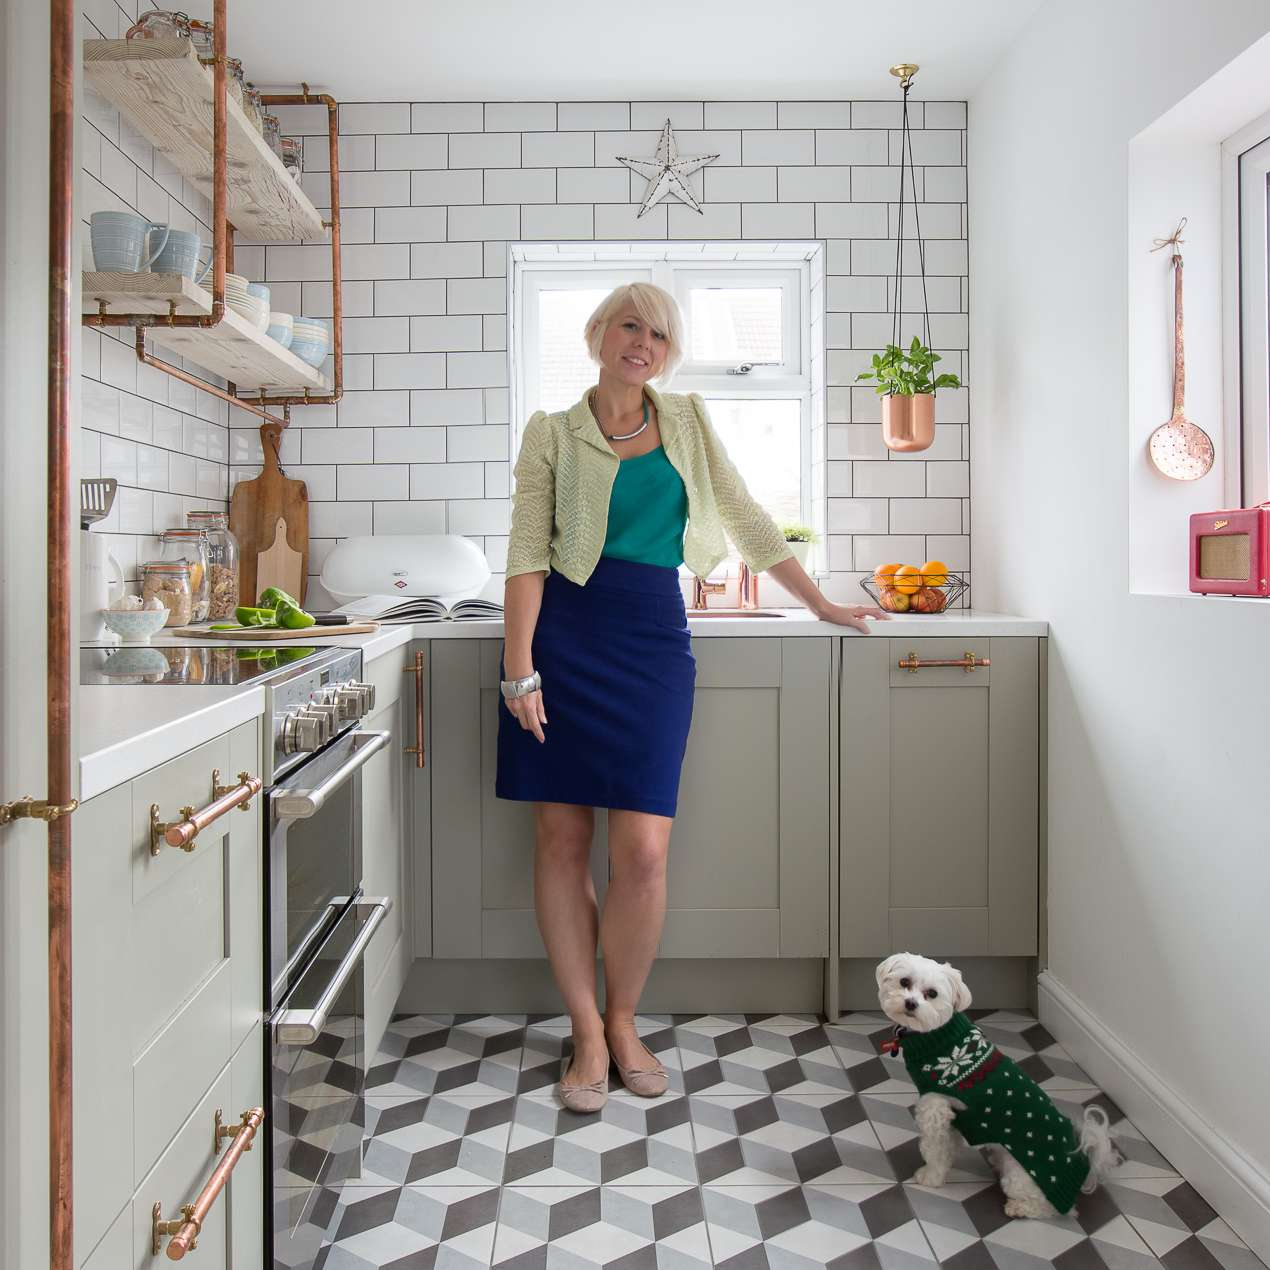 Maxine in her kitchen with dog and hanging plants.